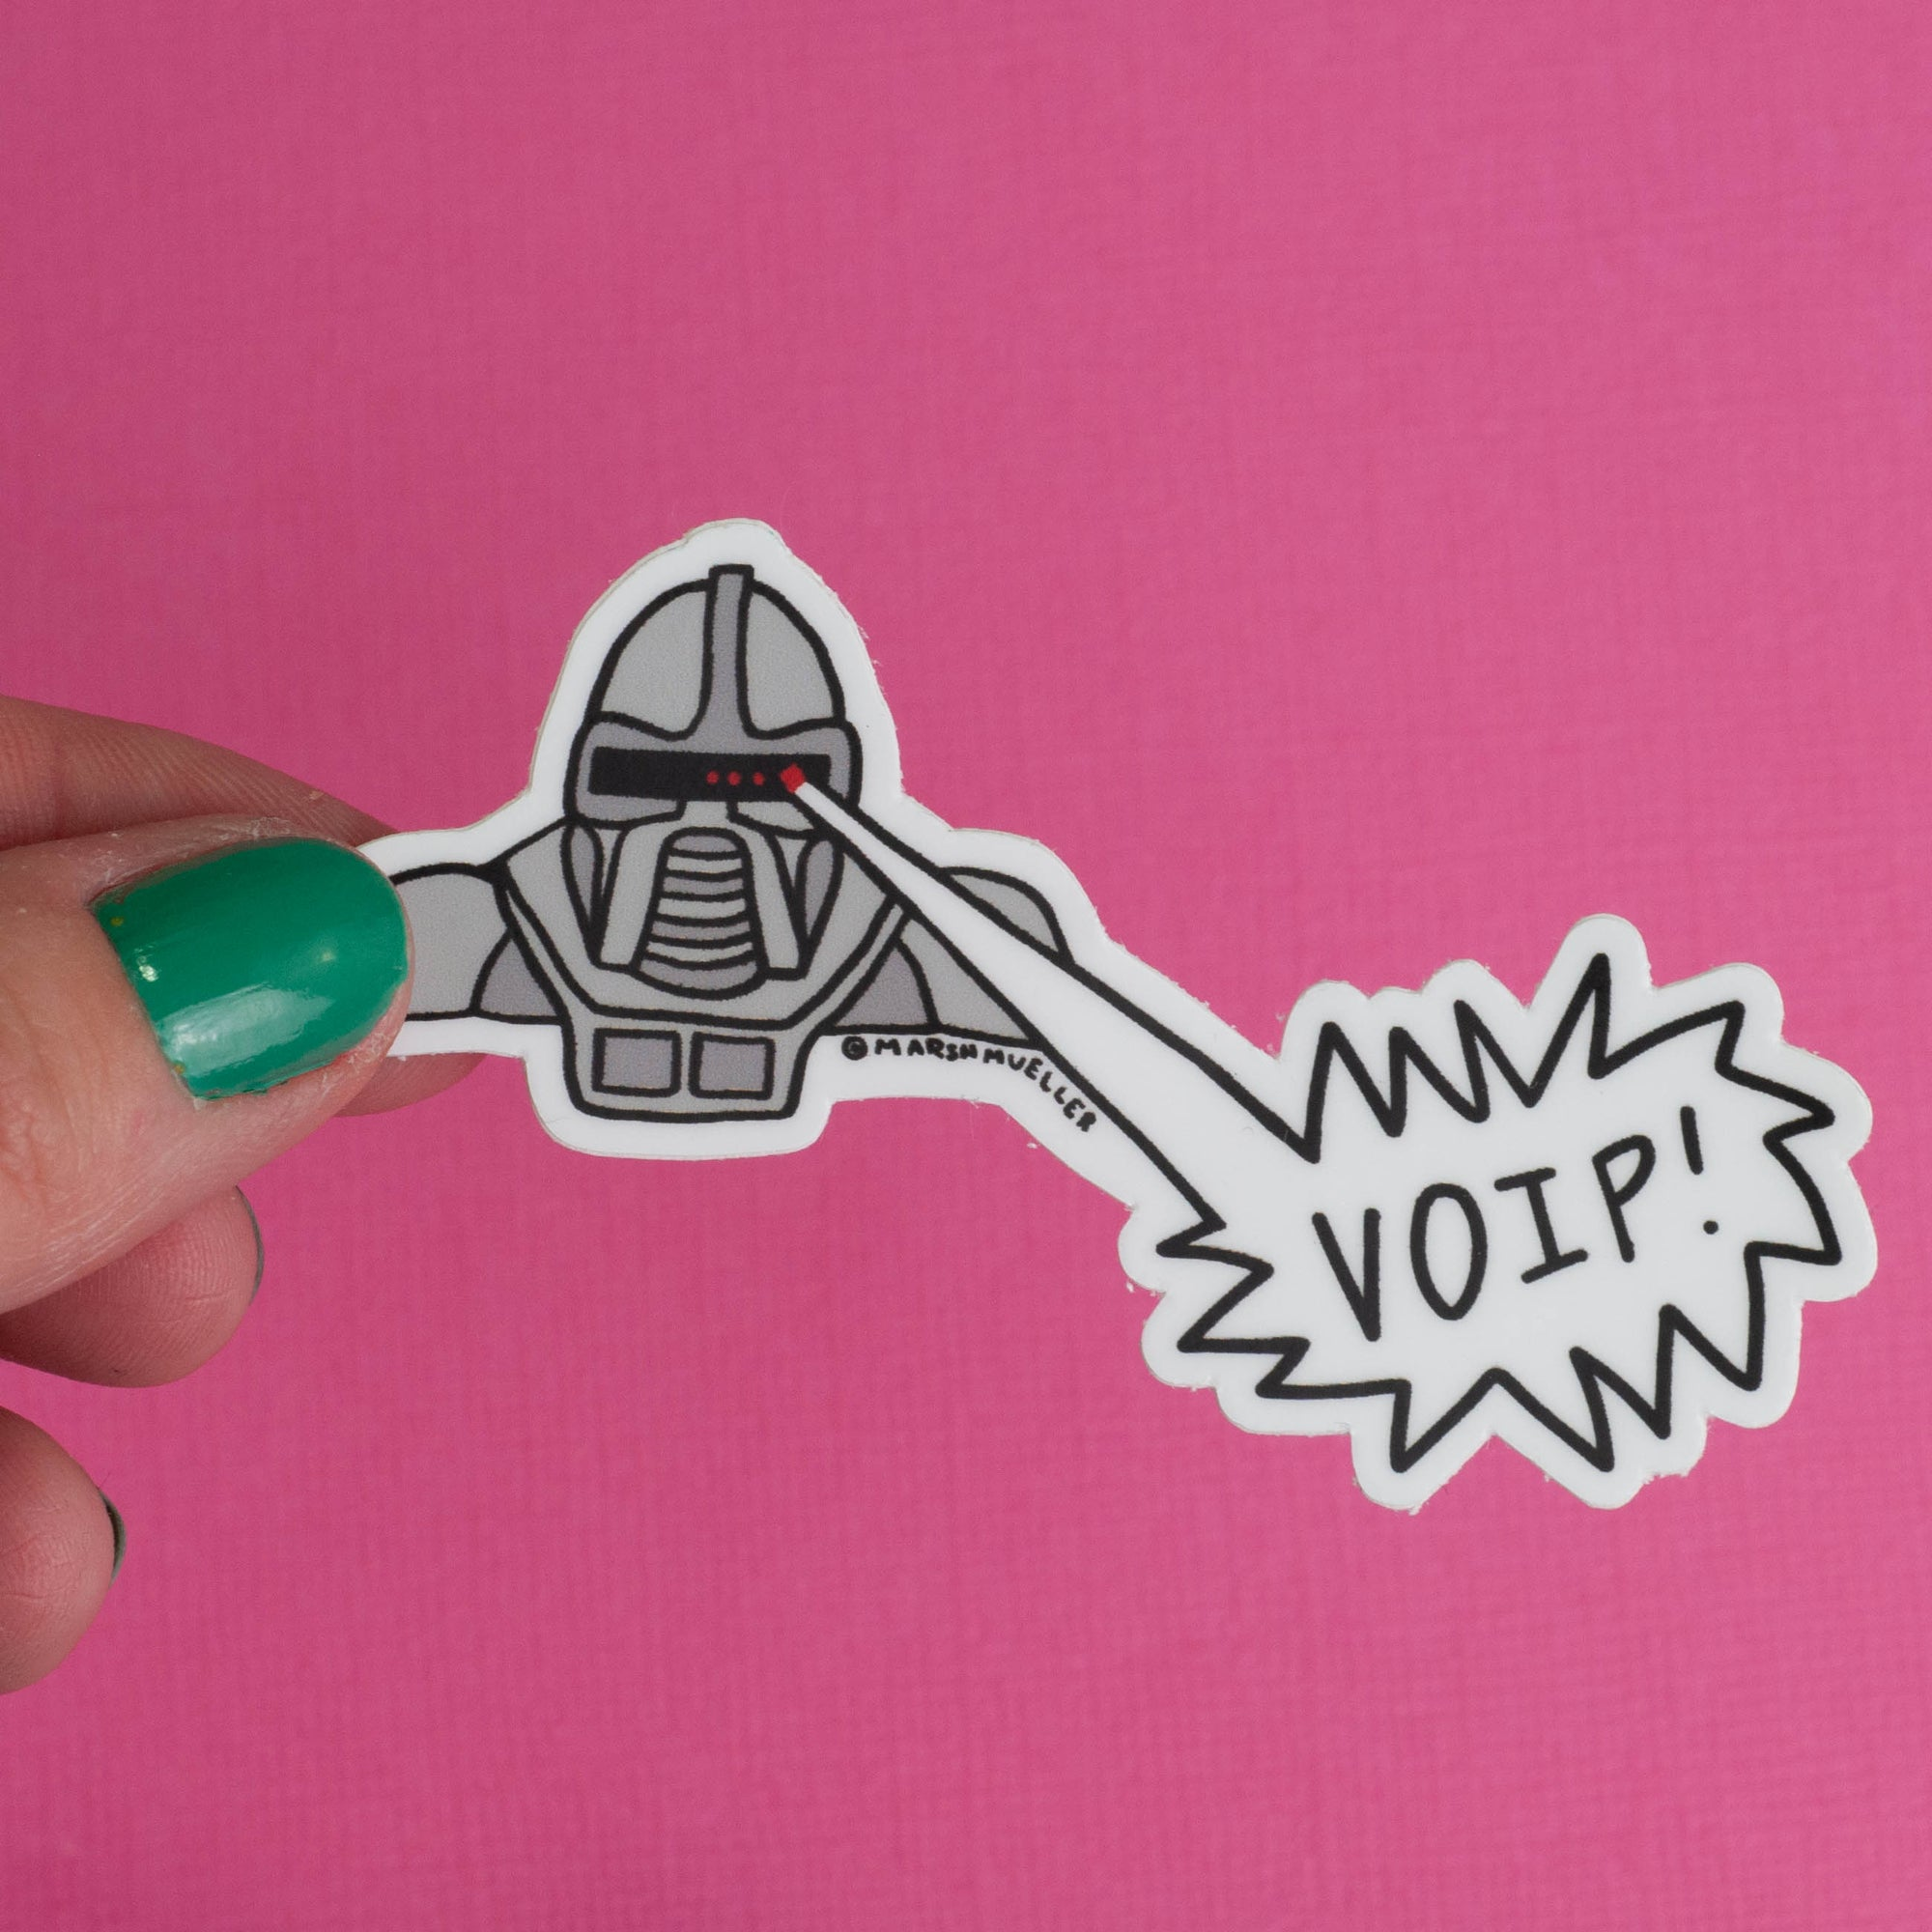 Cylon Zap! Sticker